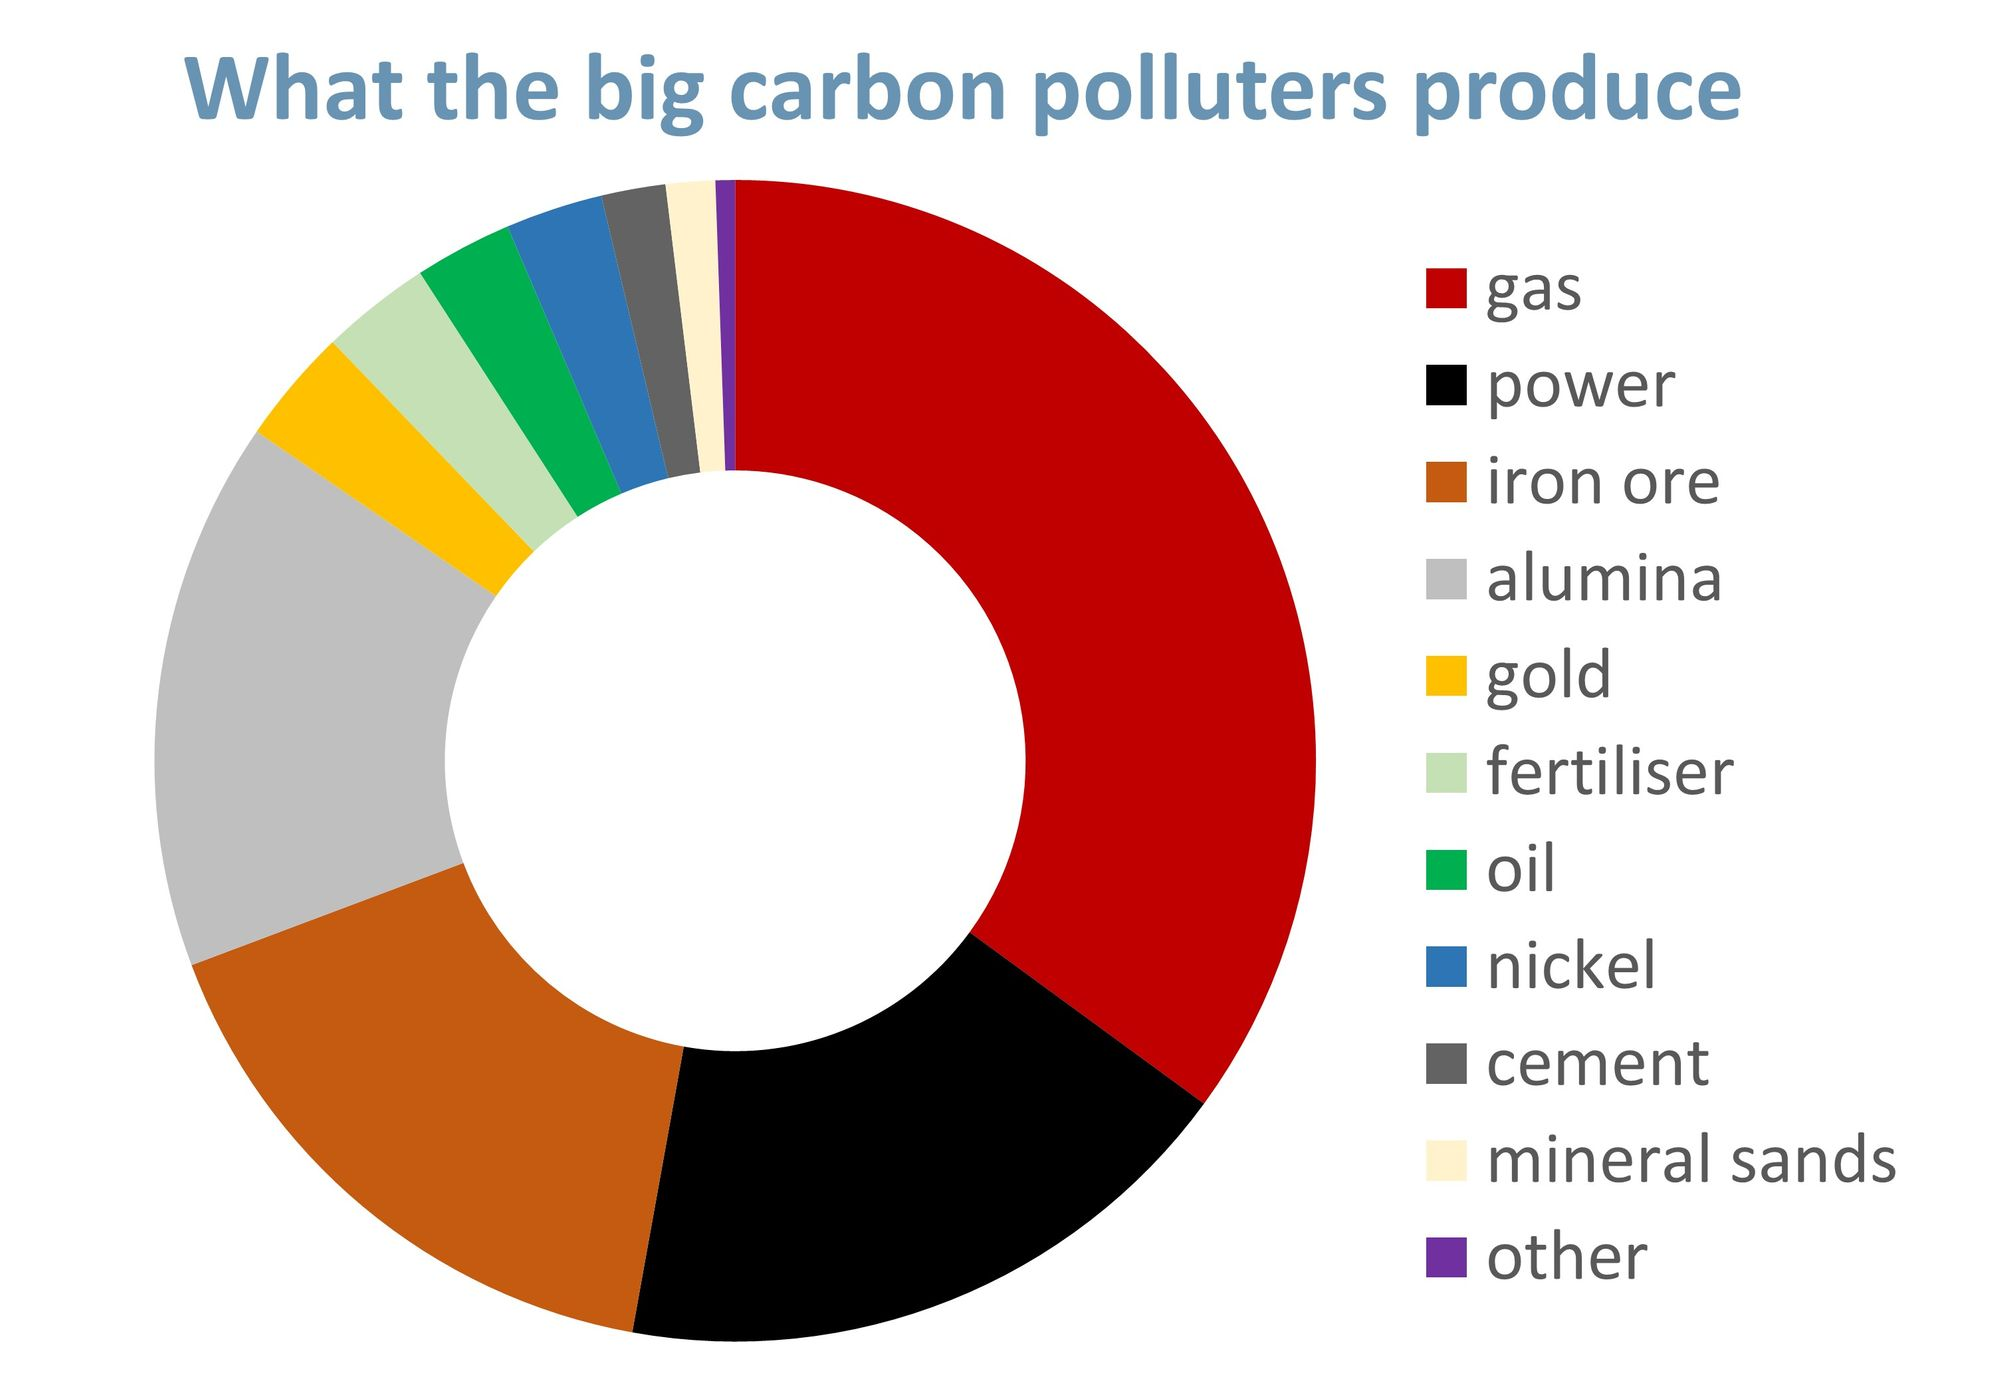 What the big carbon polluters in WA produce - mainly gas, power, iron ore and alumina